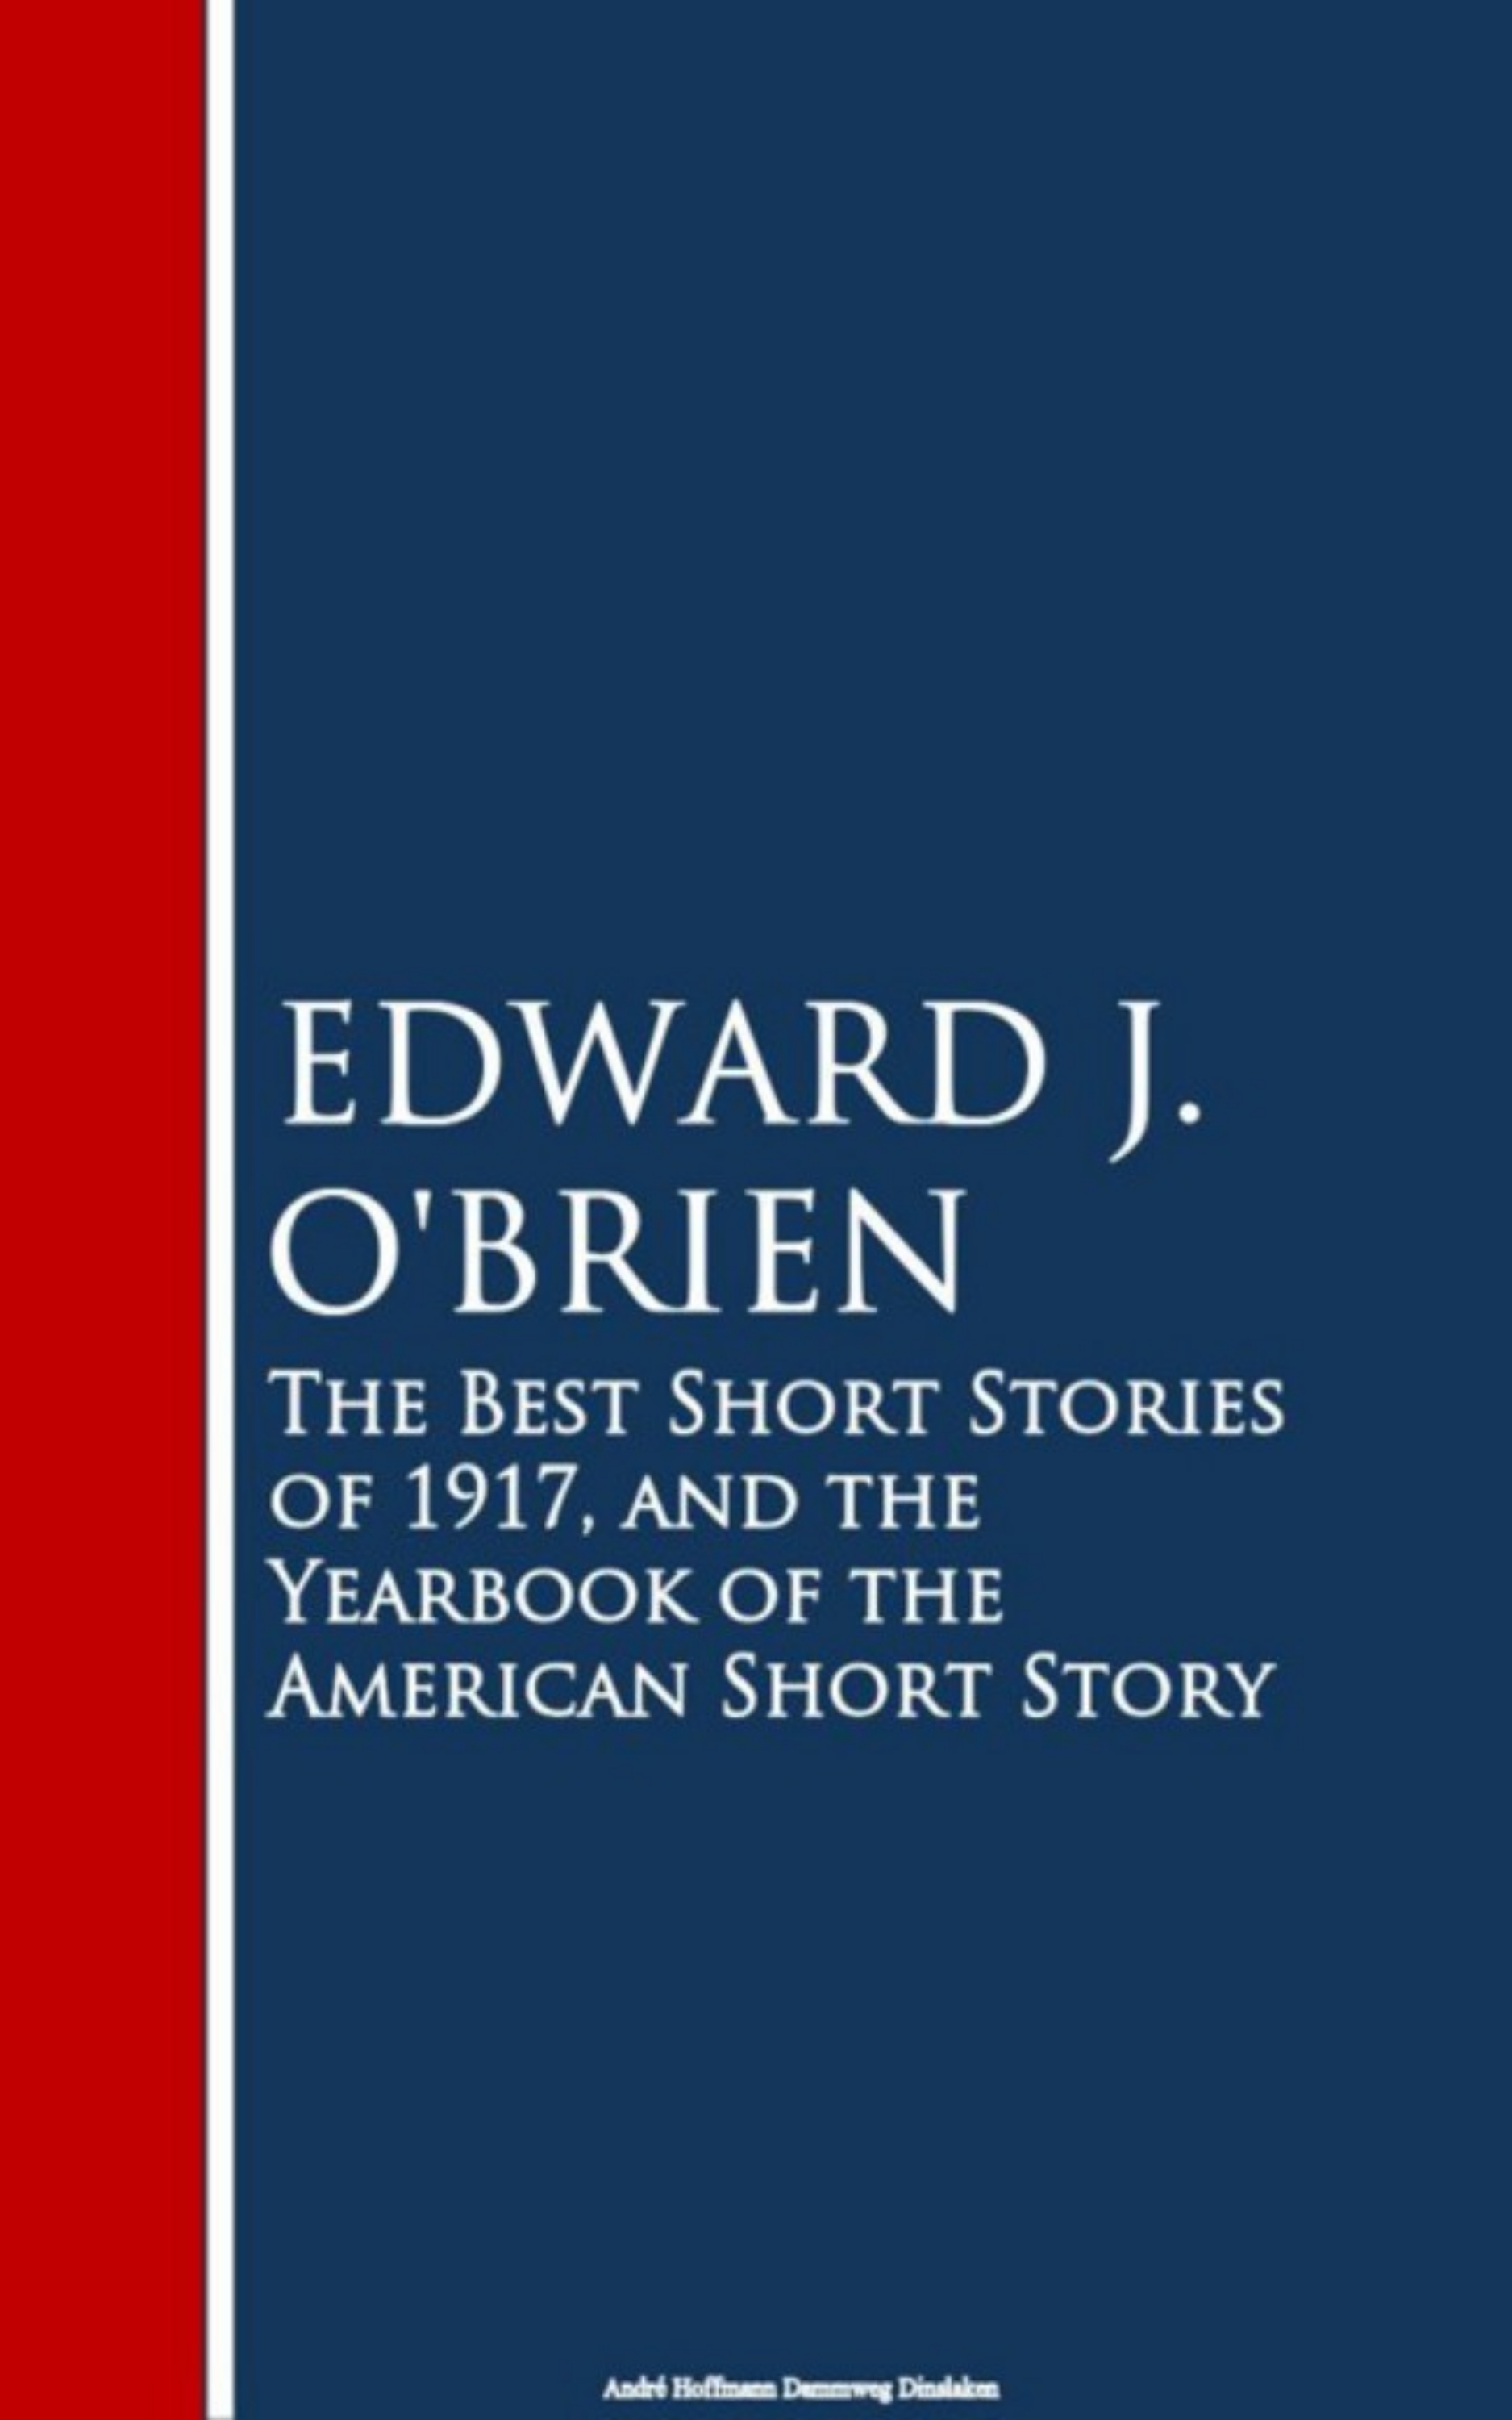 Edward J. O'Brien The Best Short Stories of 1917, and the Yearbook of the American Short Story edward eggleston stories of american life and adventure